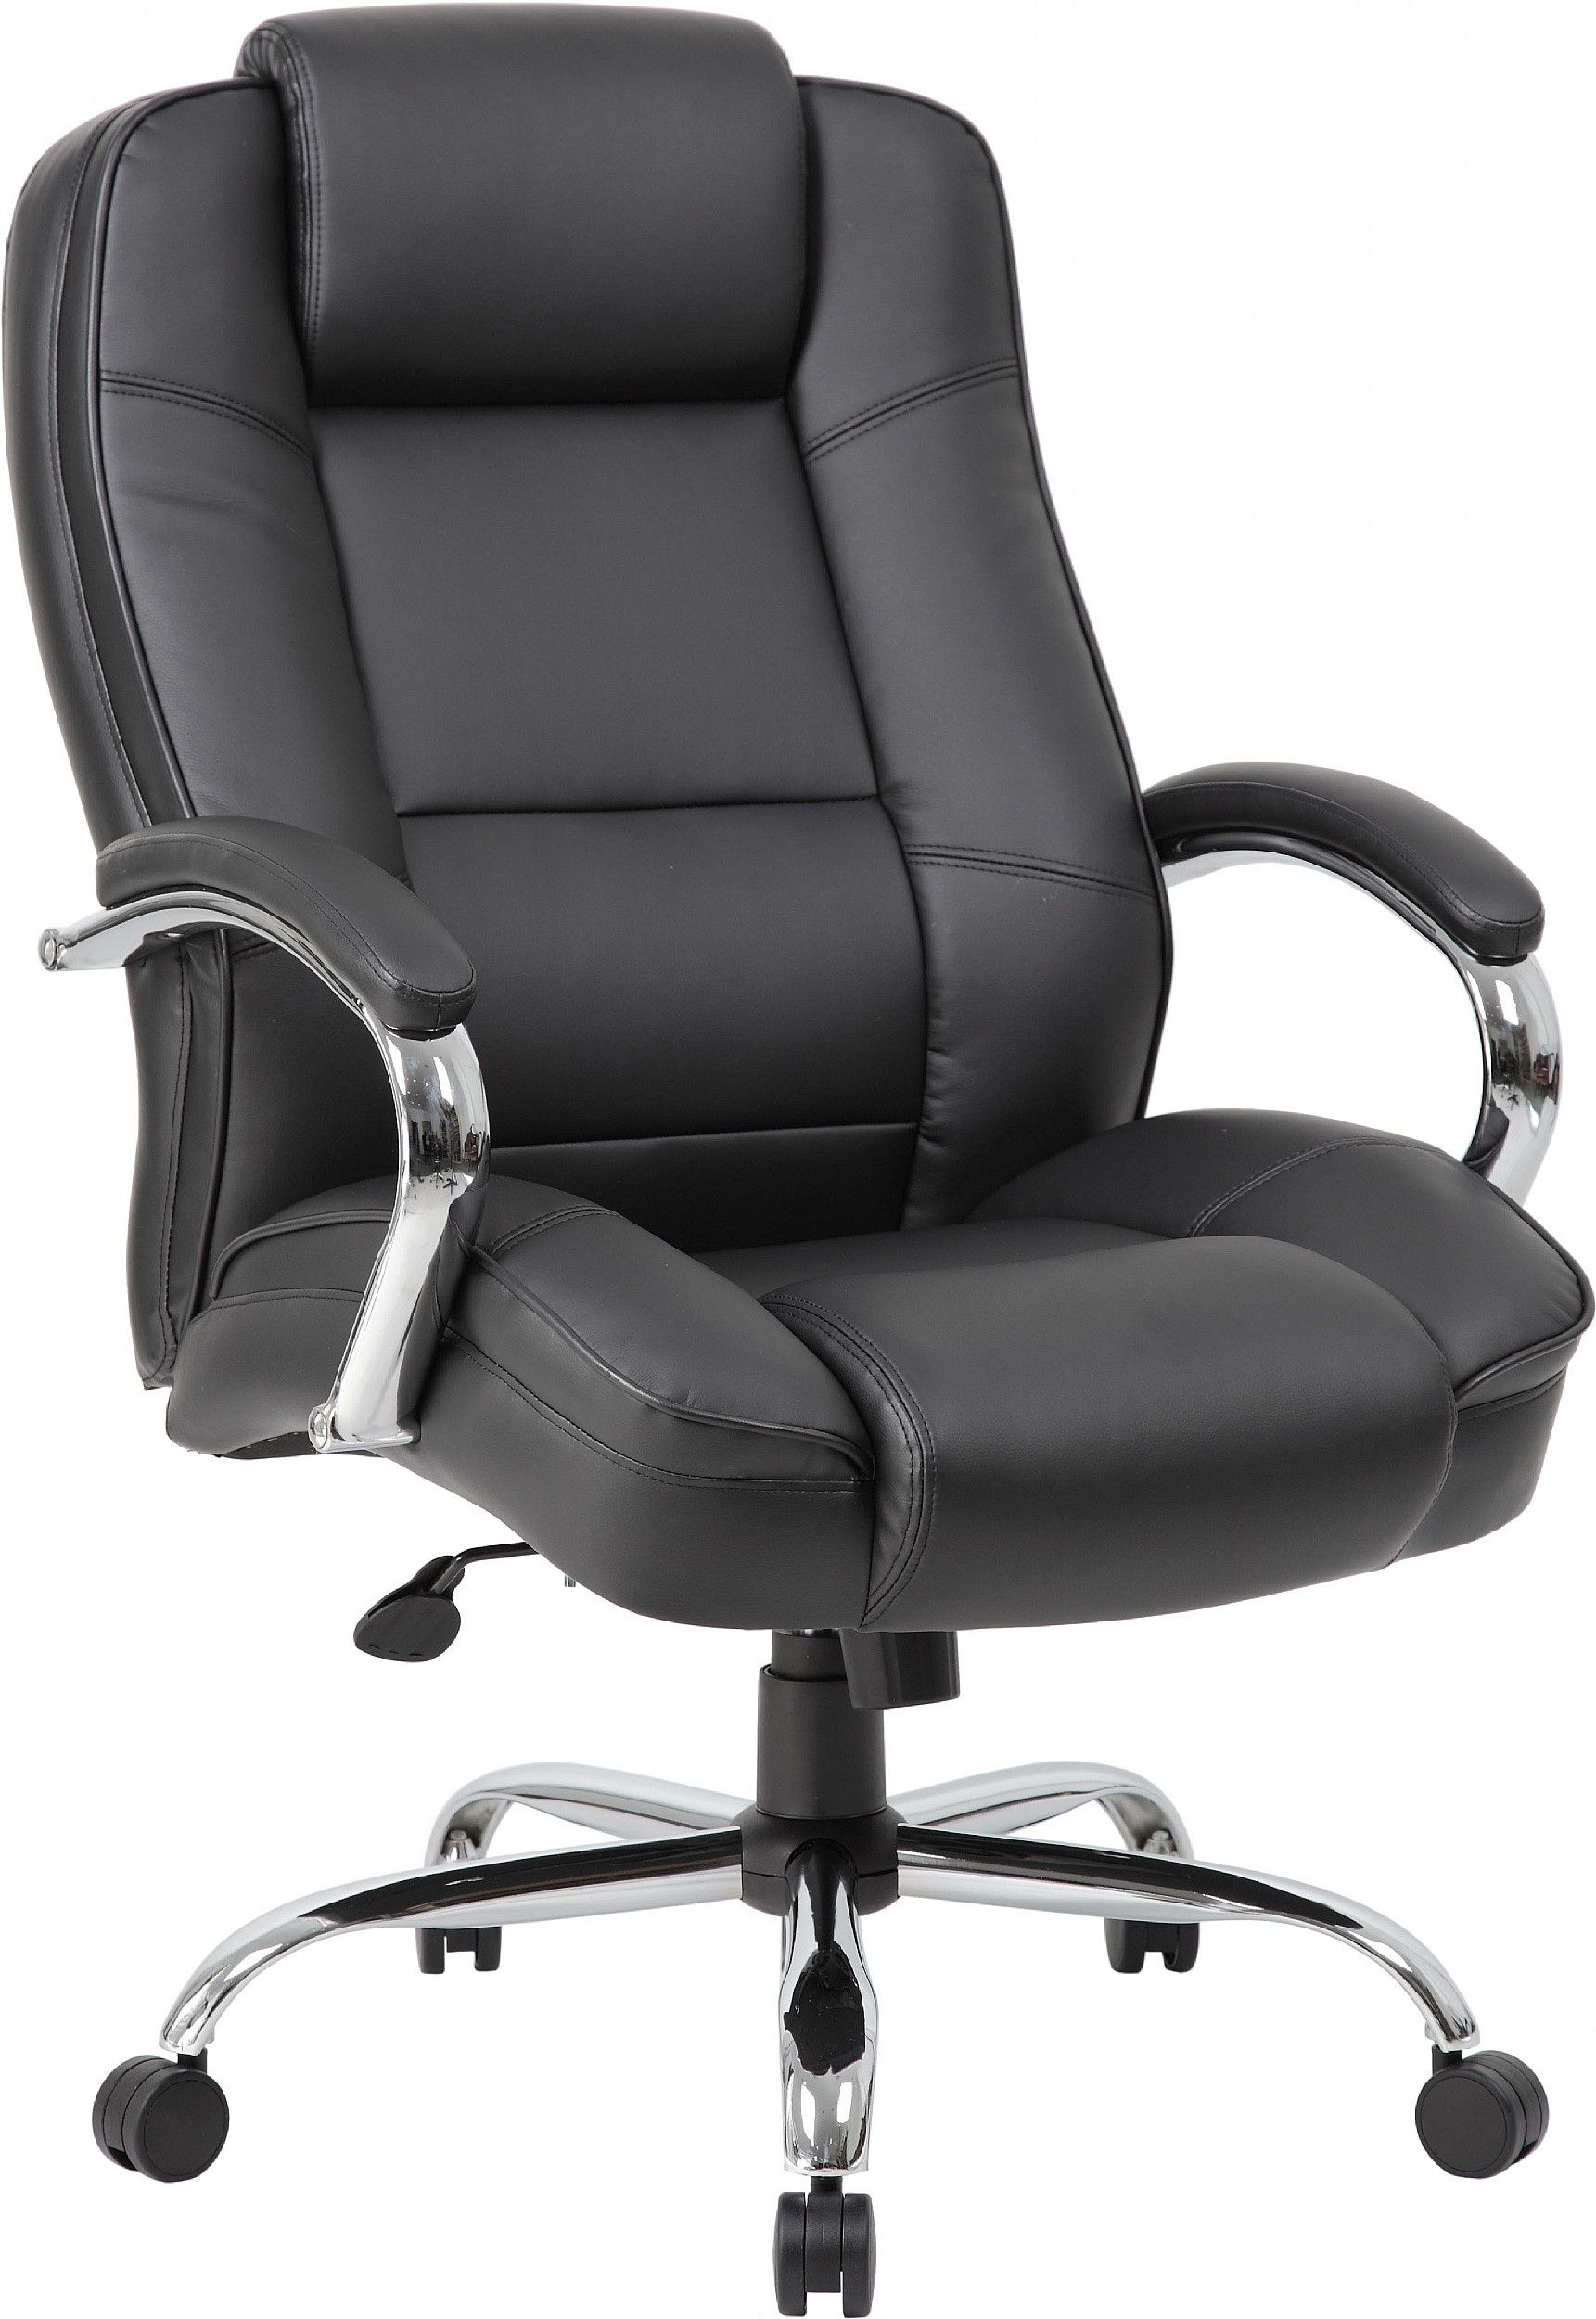 Bariatric Office Chairs 33 in 33  Office chair, Office chair